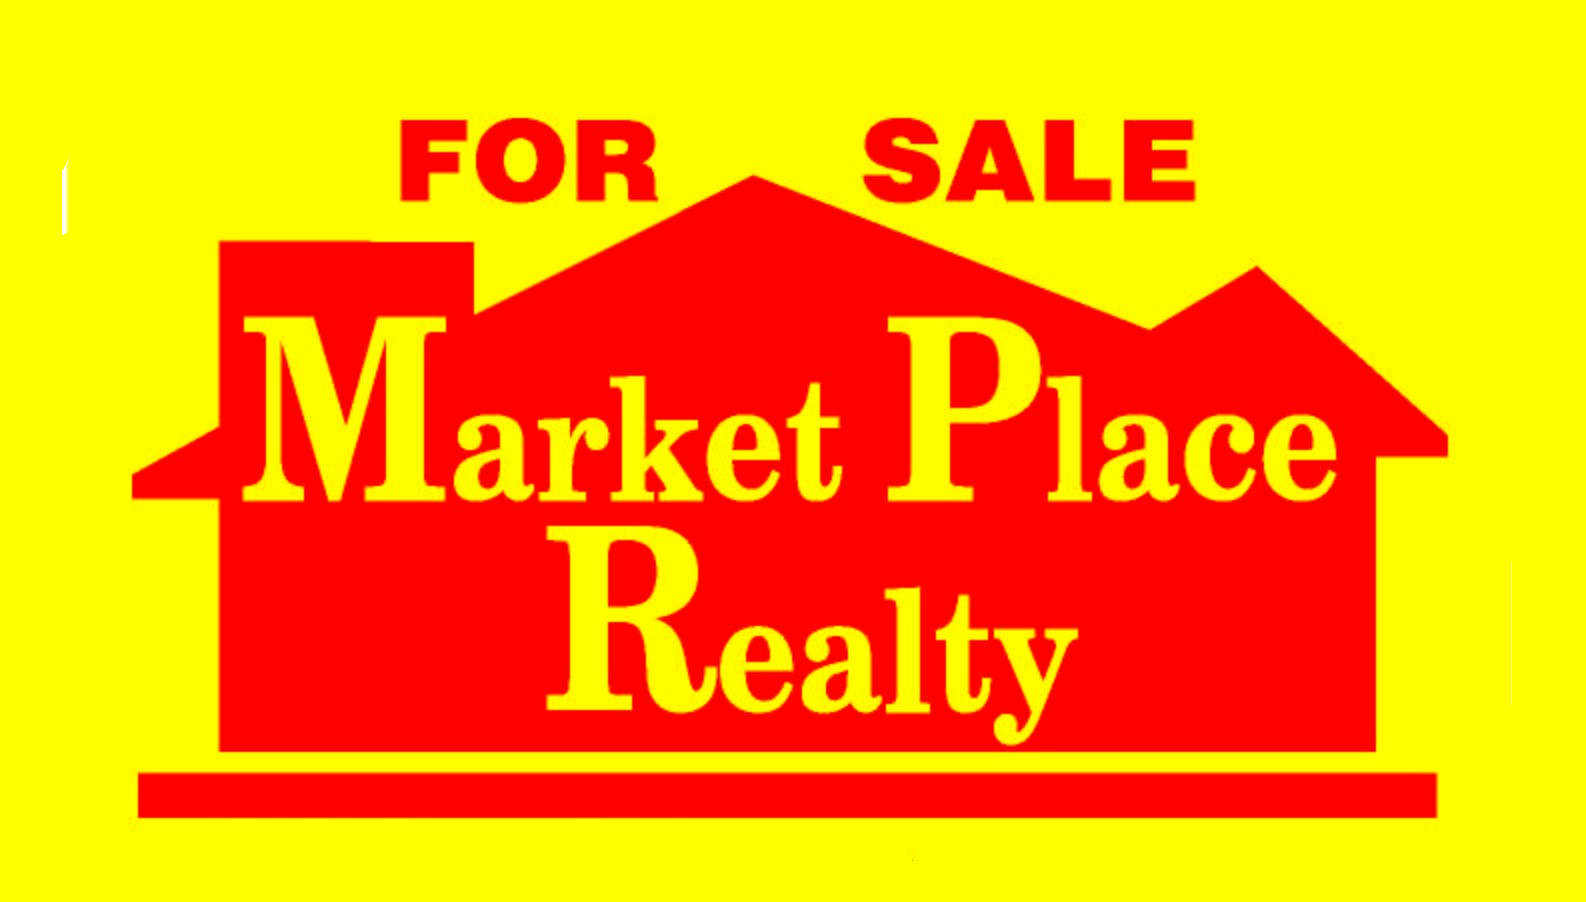 Market Place Realty